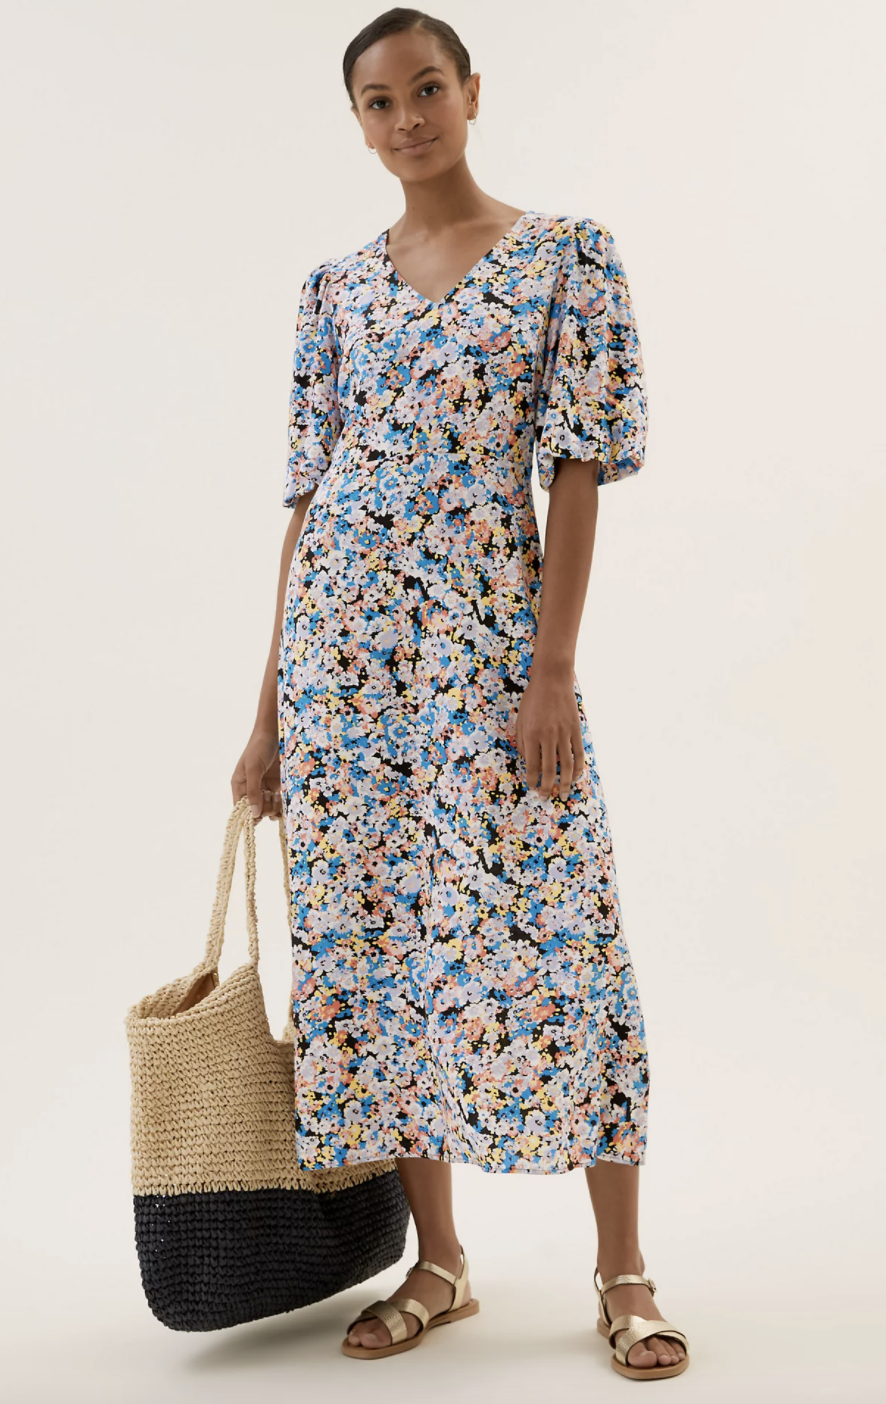 Whether you pair it with trainers, flat sandals or heeled wedges, this is our summer staple. (Marks and Spencer)